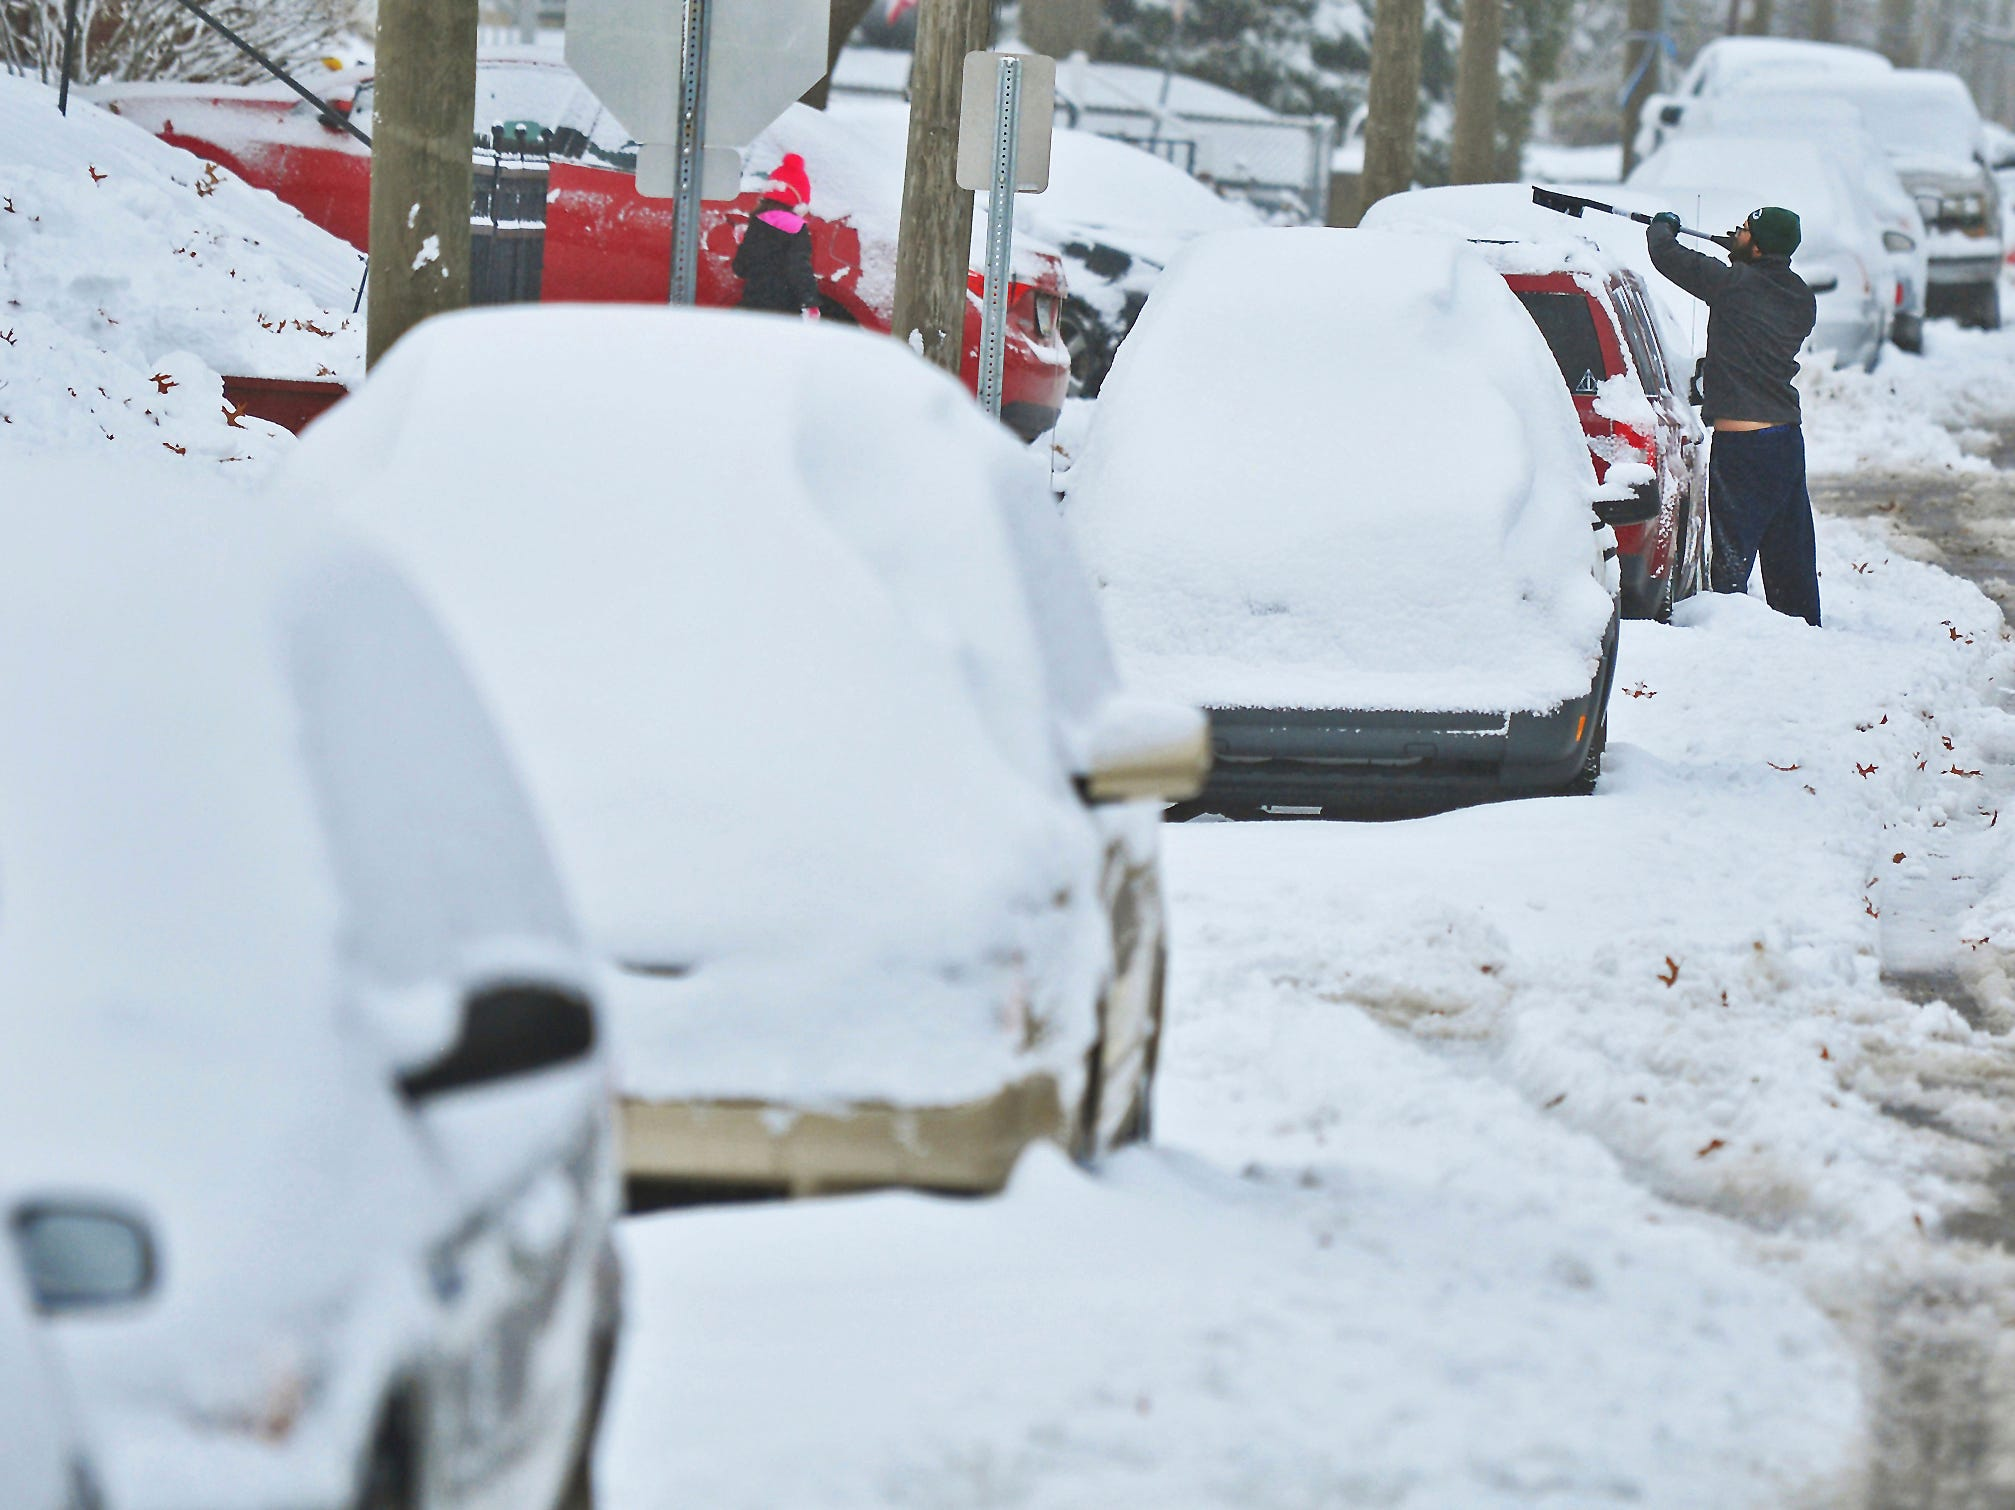 A resident clears away snow from a vehicle in Blakely, Pa., on Friday, Nov. 16, 2018. The first snowstorm of the season caused havoc around Pennsylvania, downing trees and power lines and causing a travel nightmare, including for some drivers who were stuck for 12 hours on a snowy interstate.